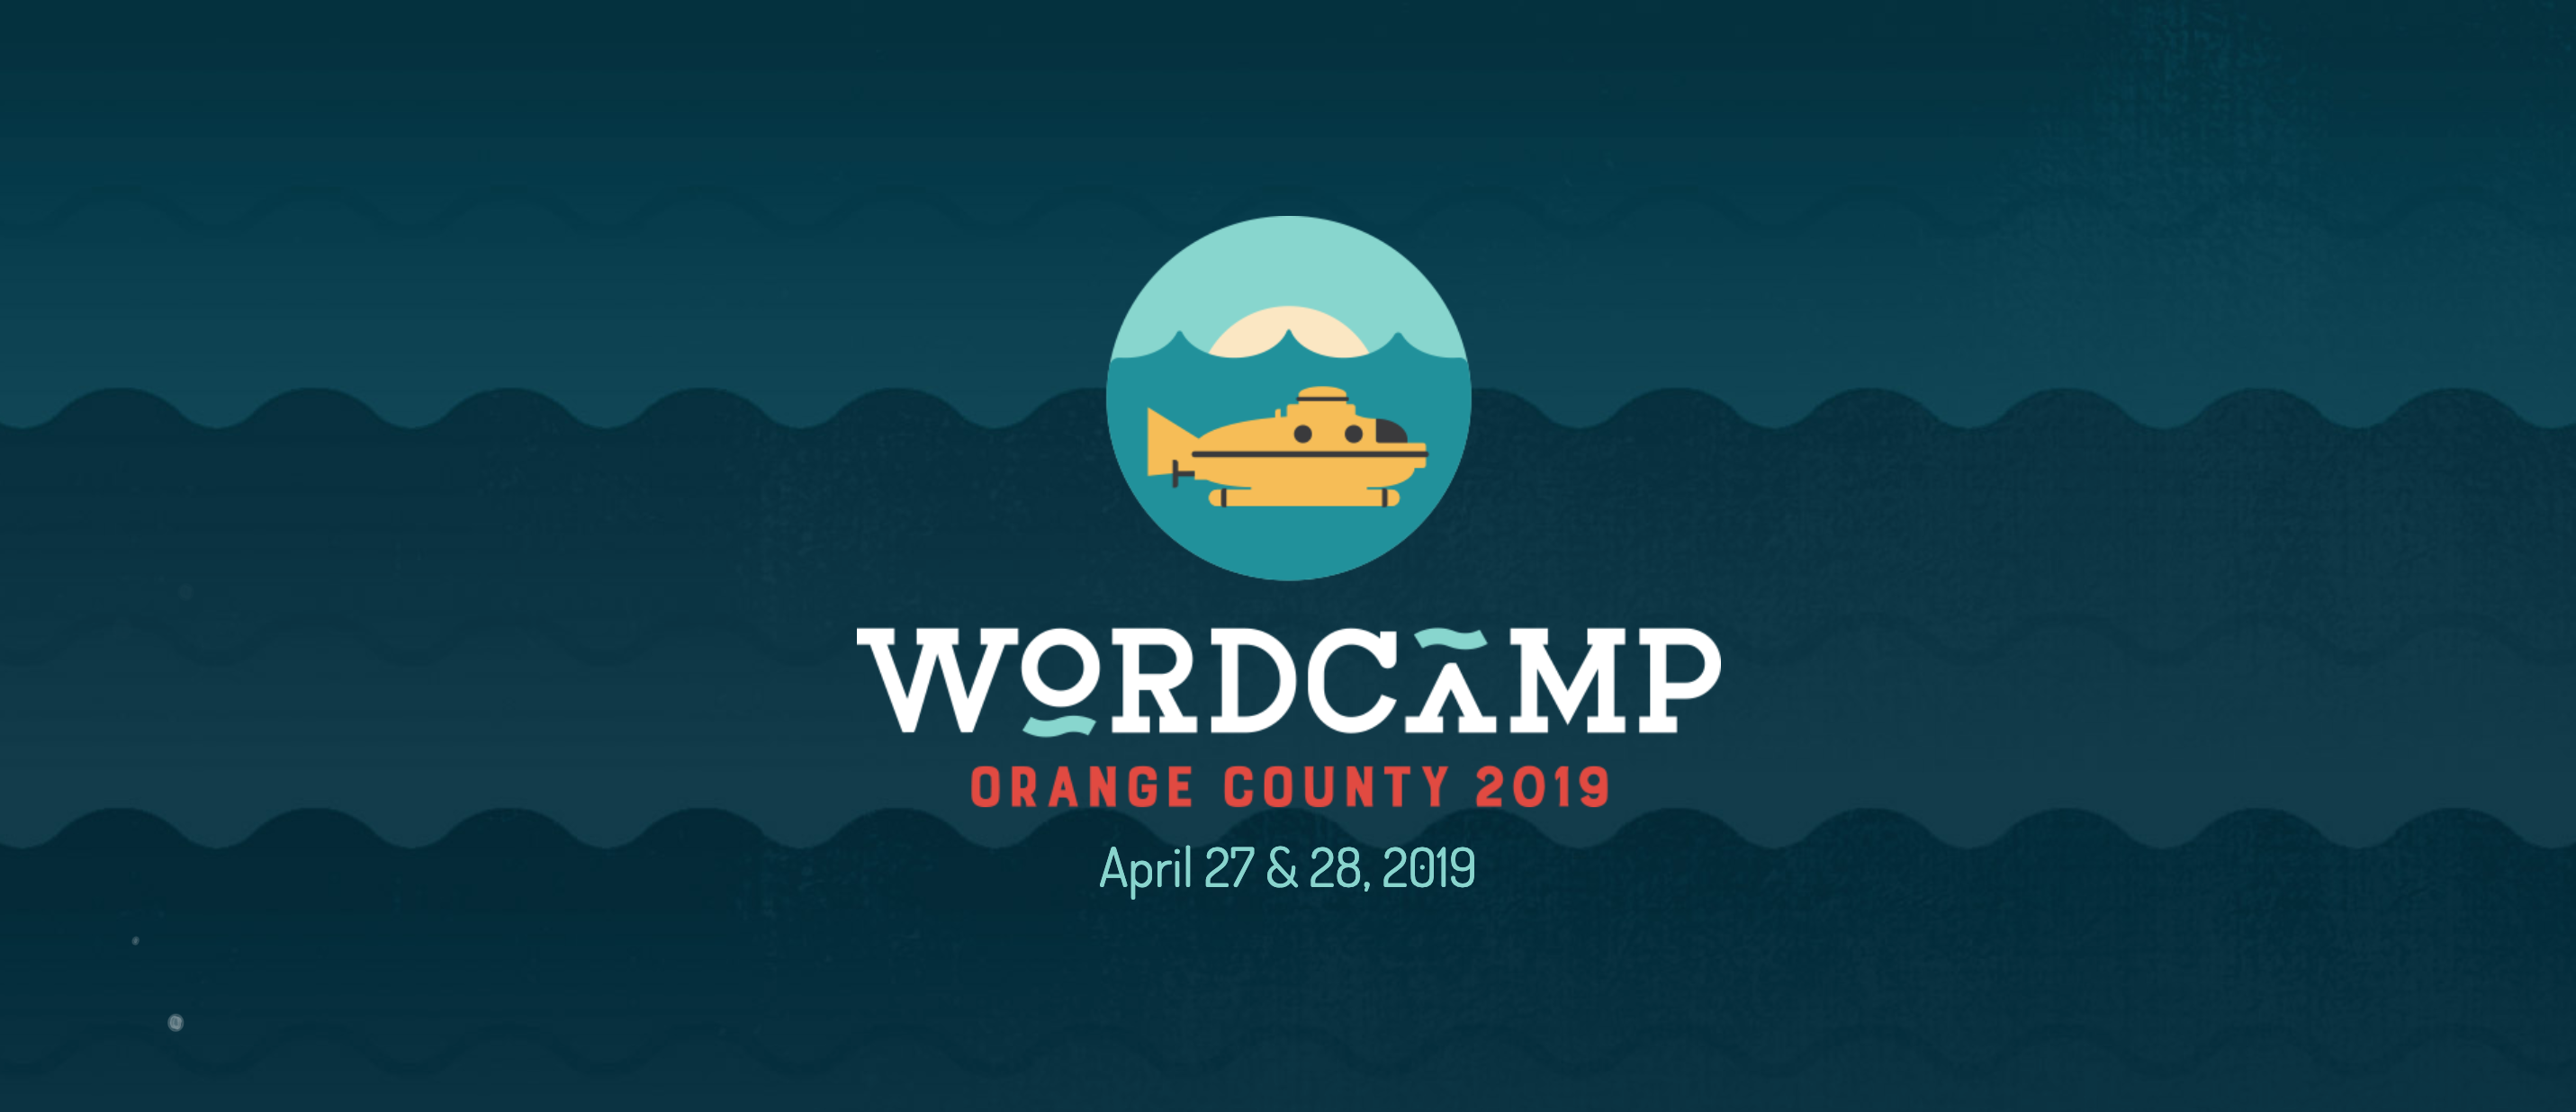 WordCamp Orange County 2019 Recap